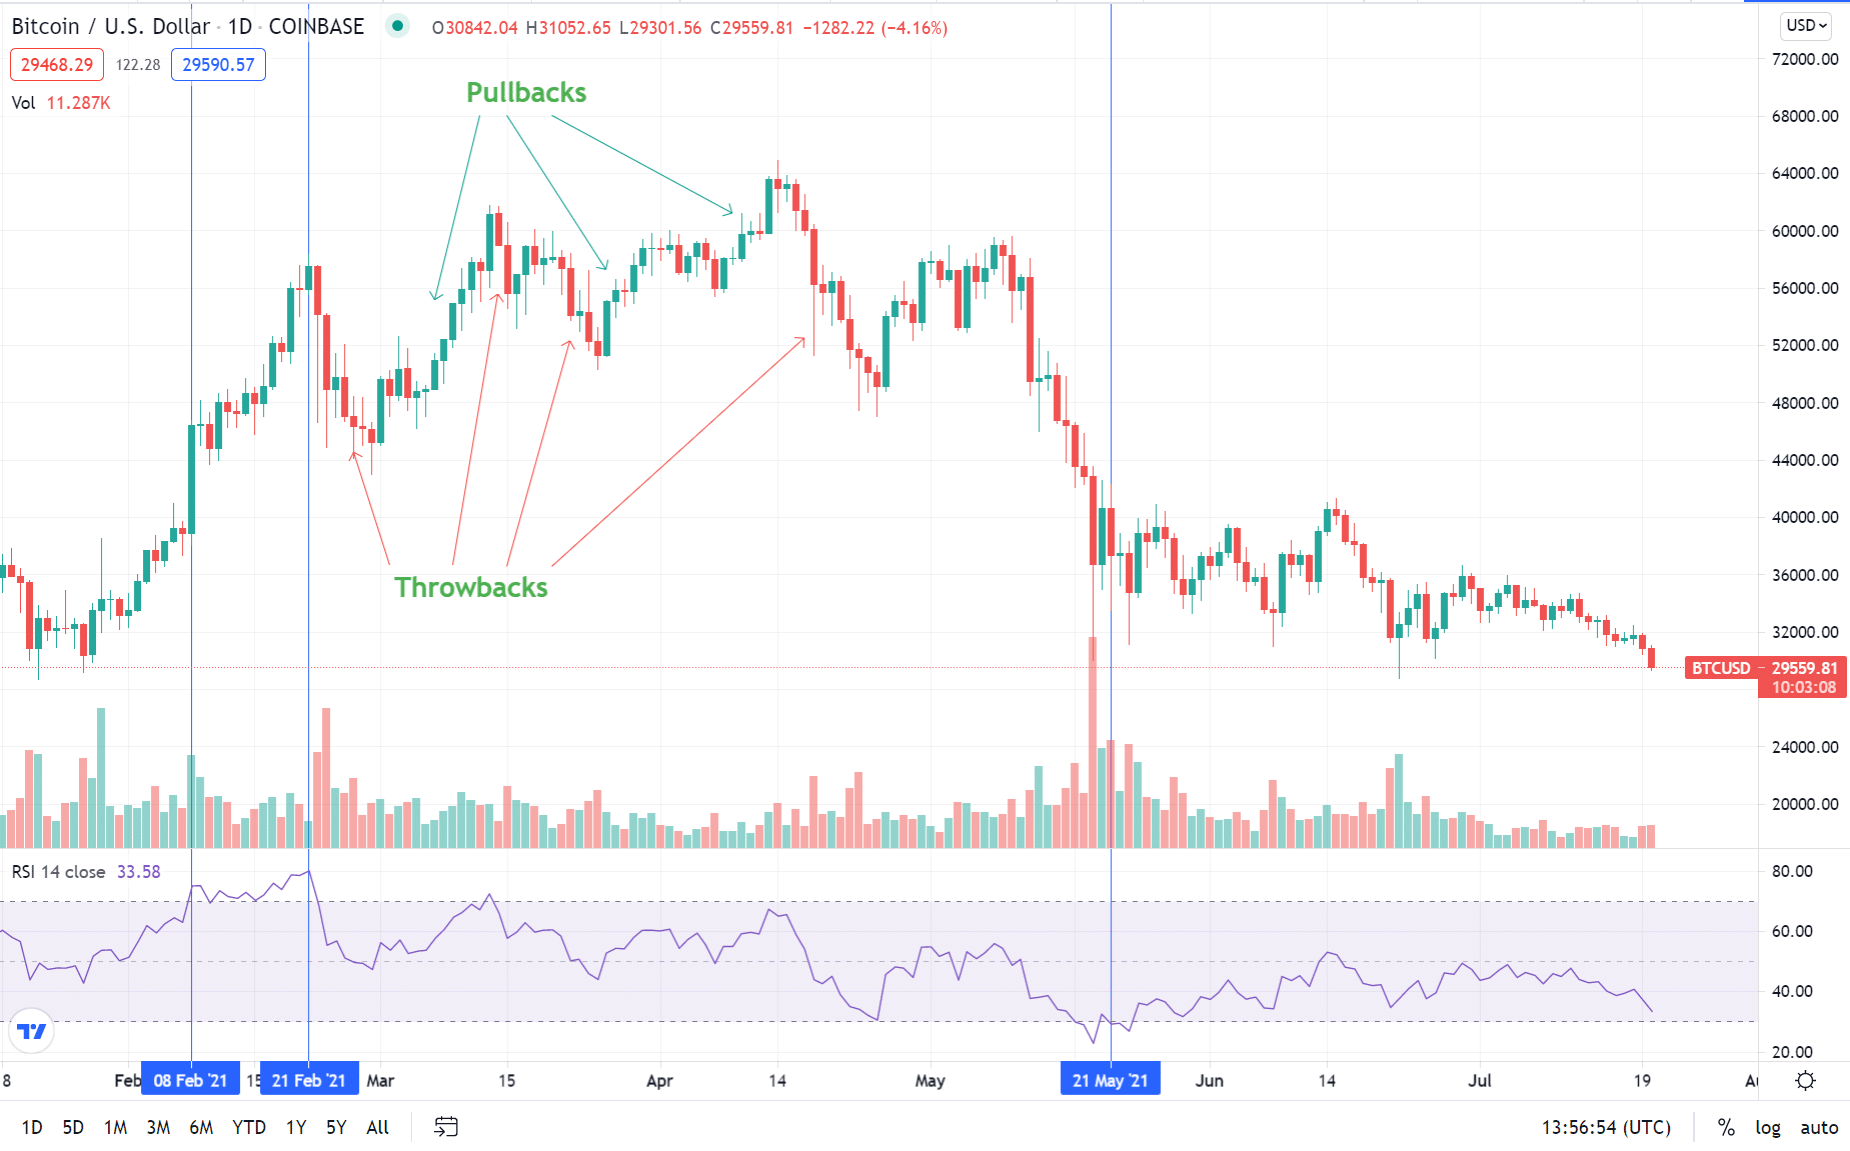 Throwbacks and Pullbacks in the BTC/USD in February 2021